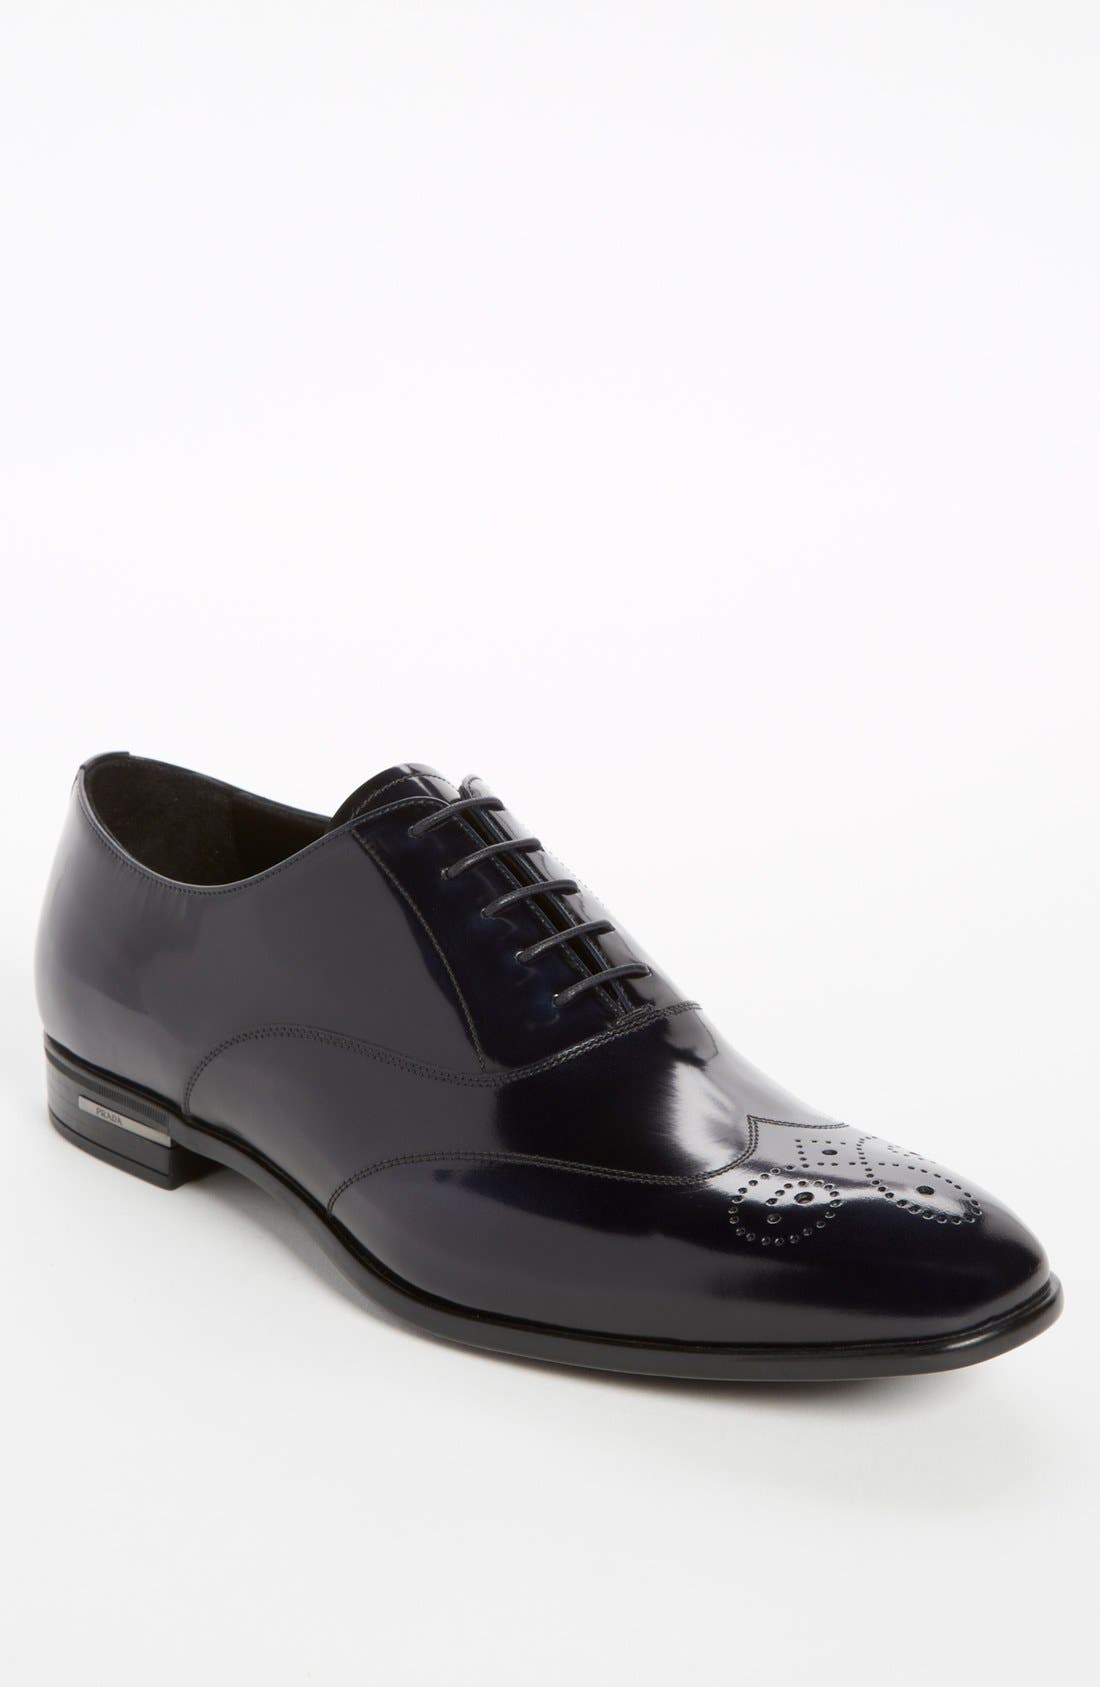 Main Image - Prada Medallion Oxford